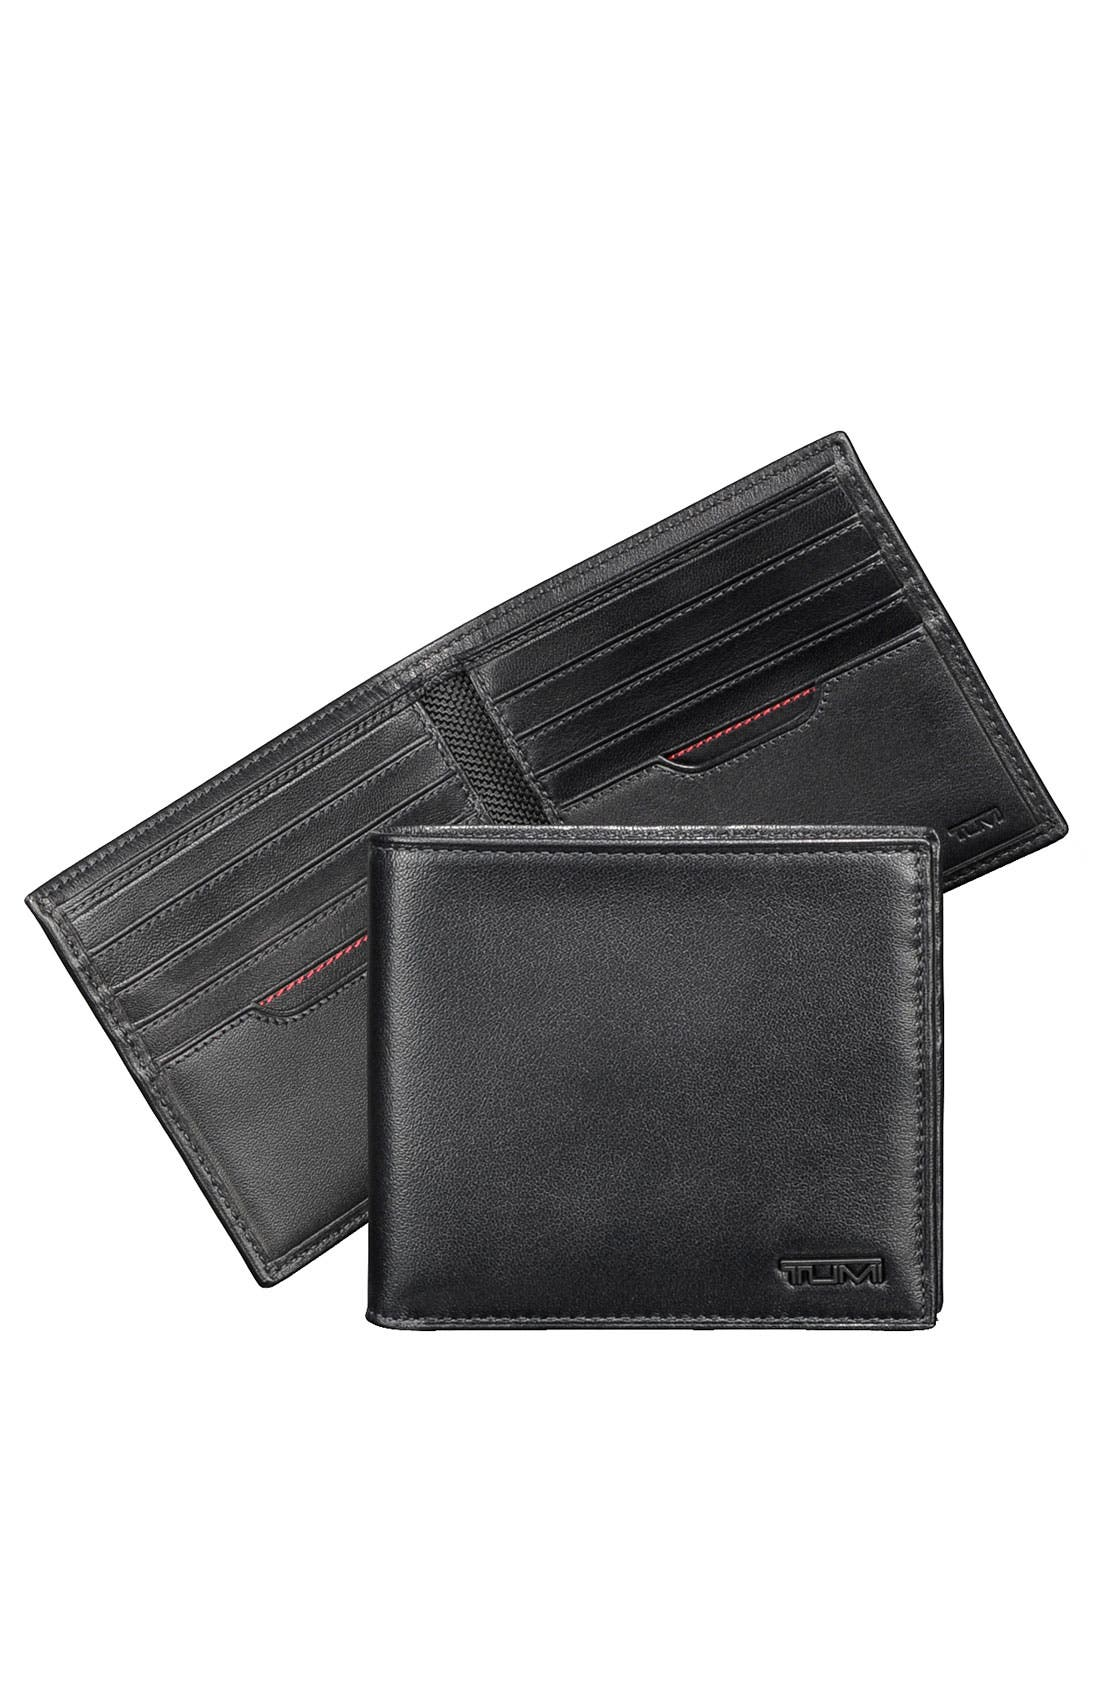 Alternate Image 1 Selected - Tumi 'Delta - Global' Hipster Wallet